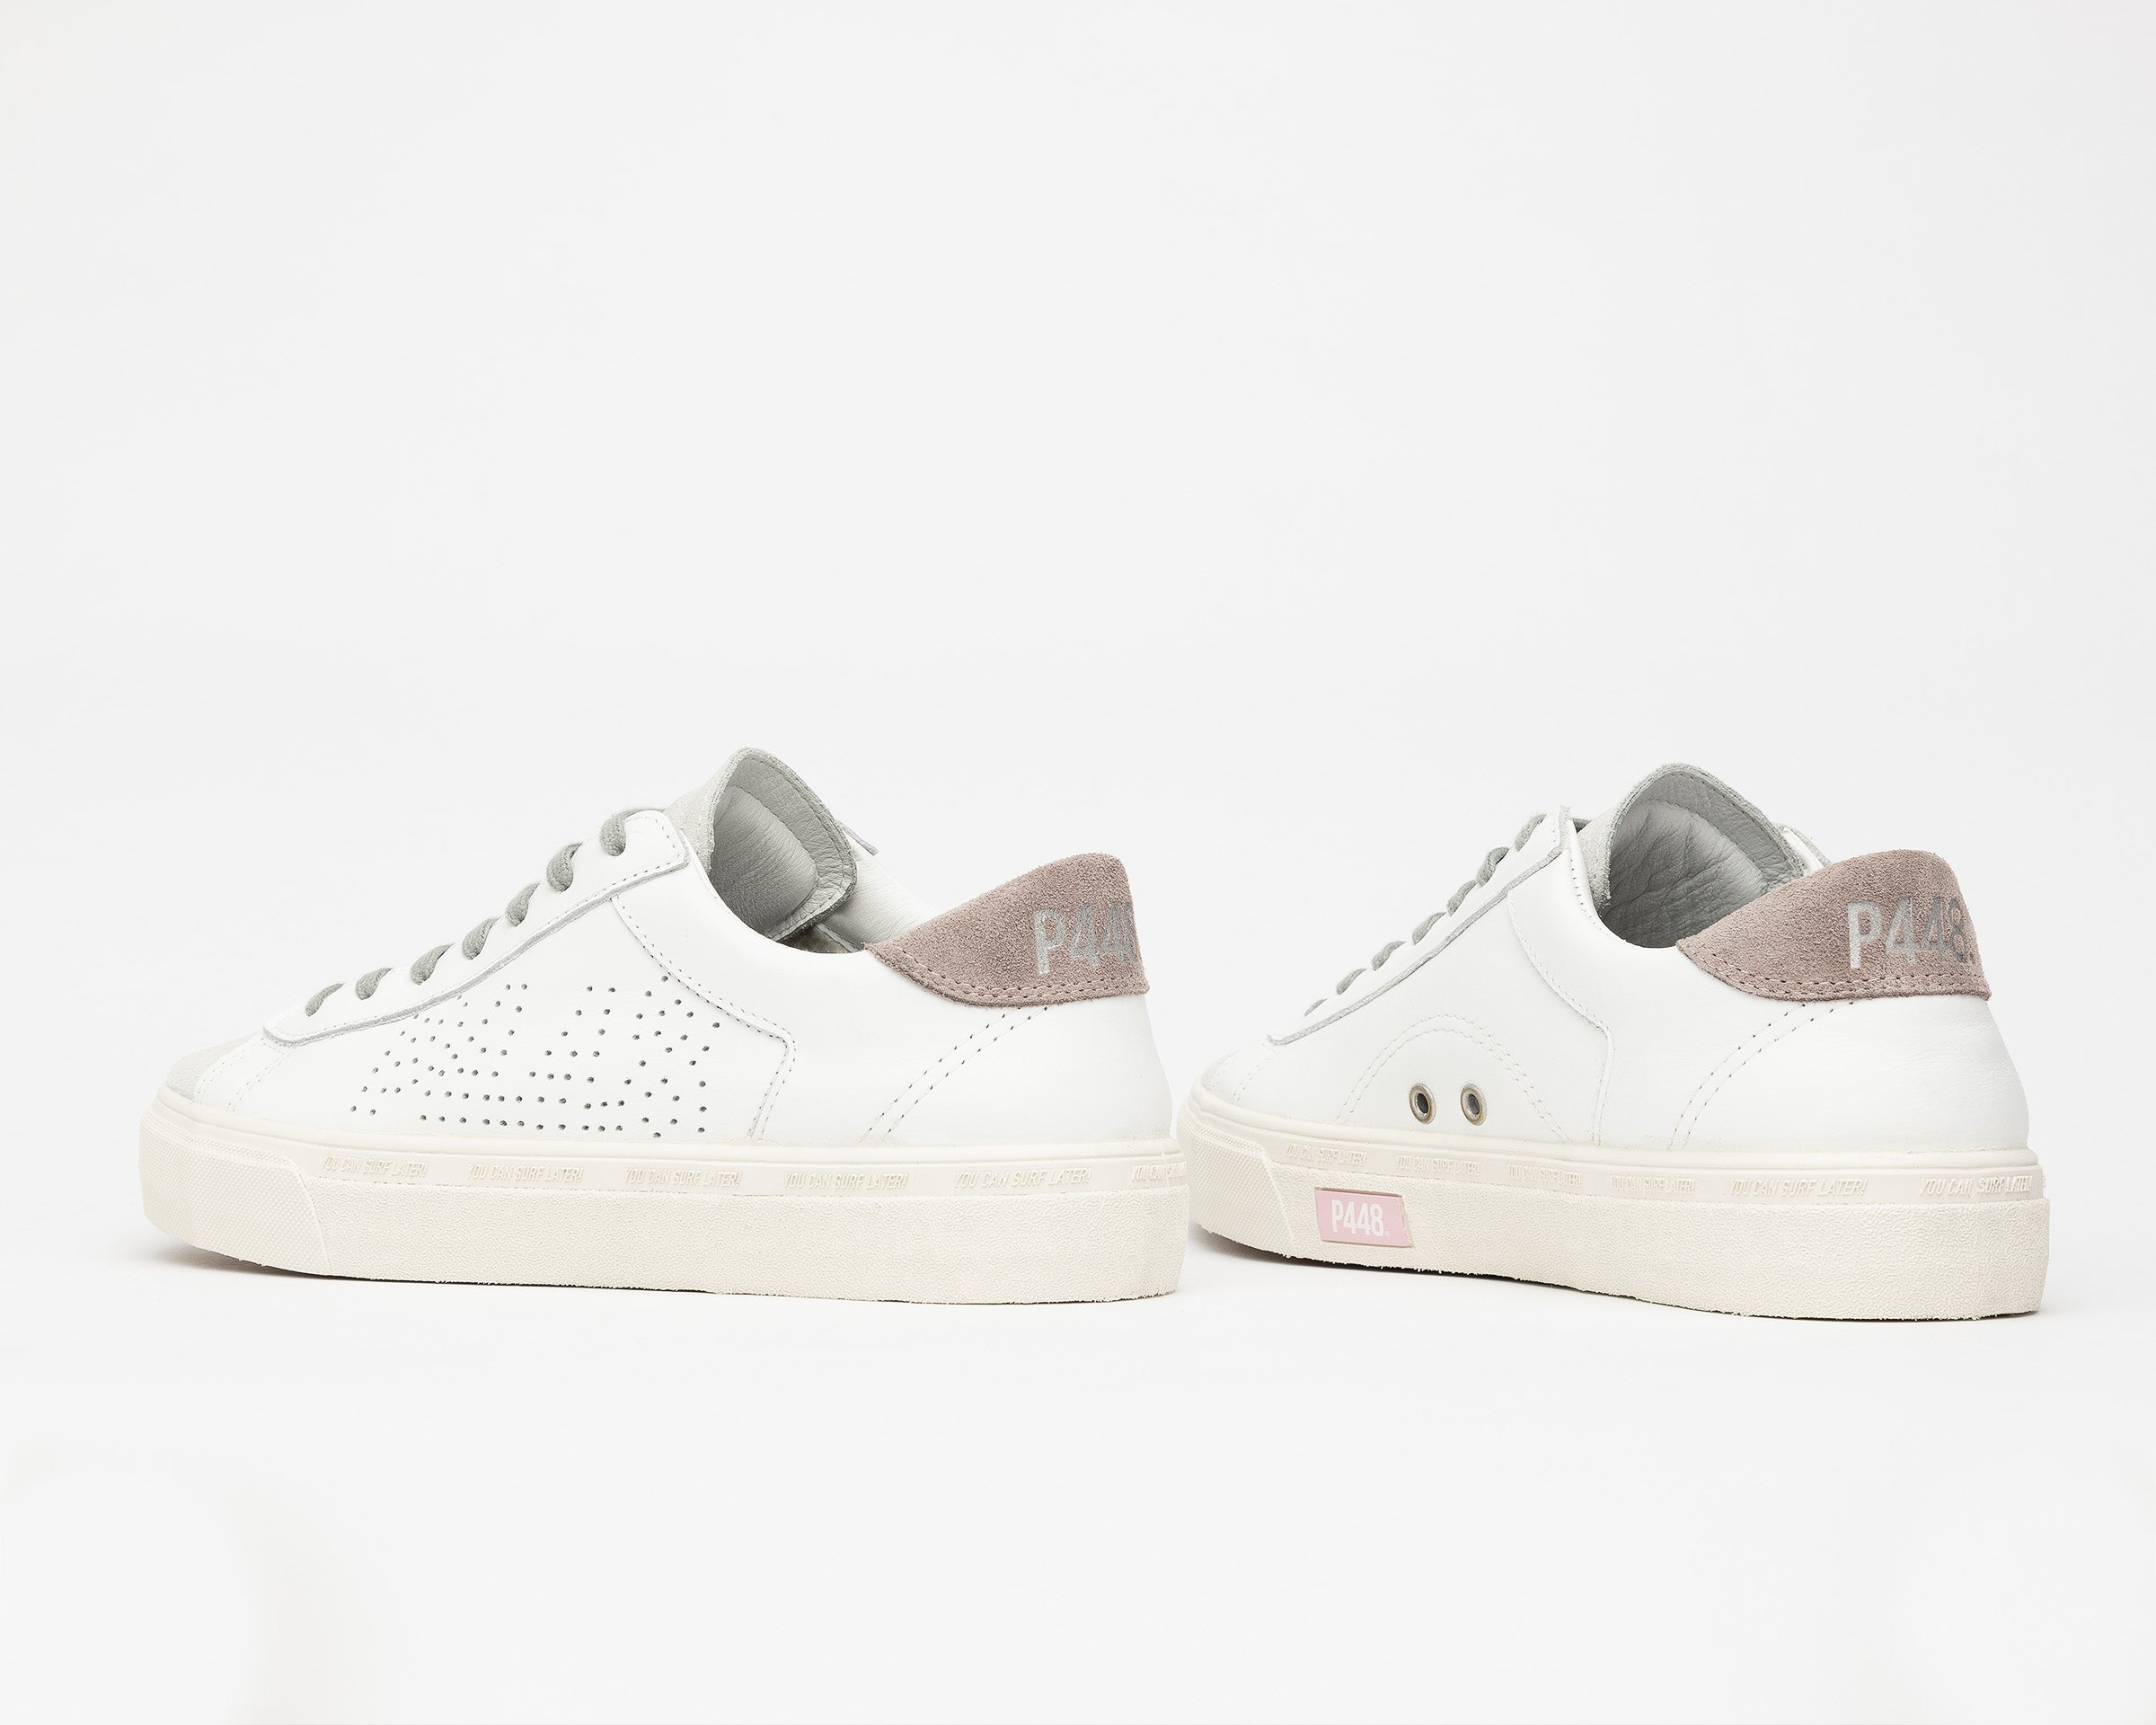 Y.C.S.L. Vibram Low-Top Sneaker in White/Pink - Detail 2